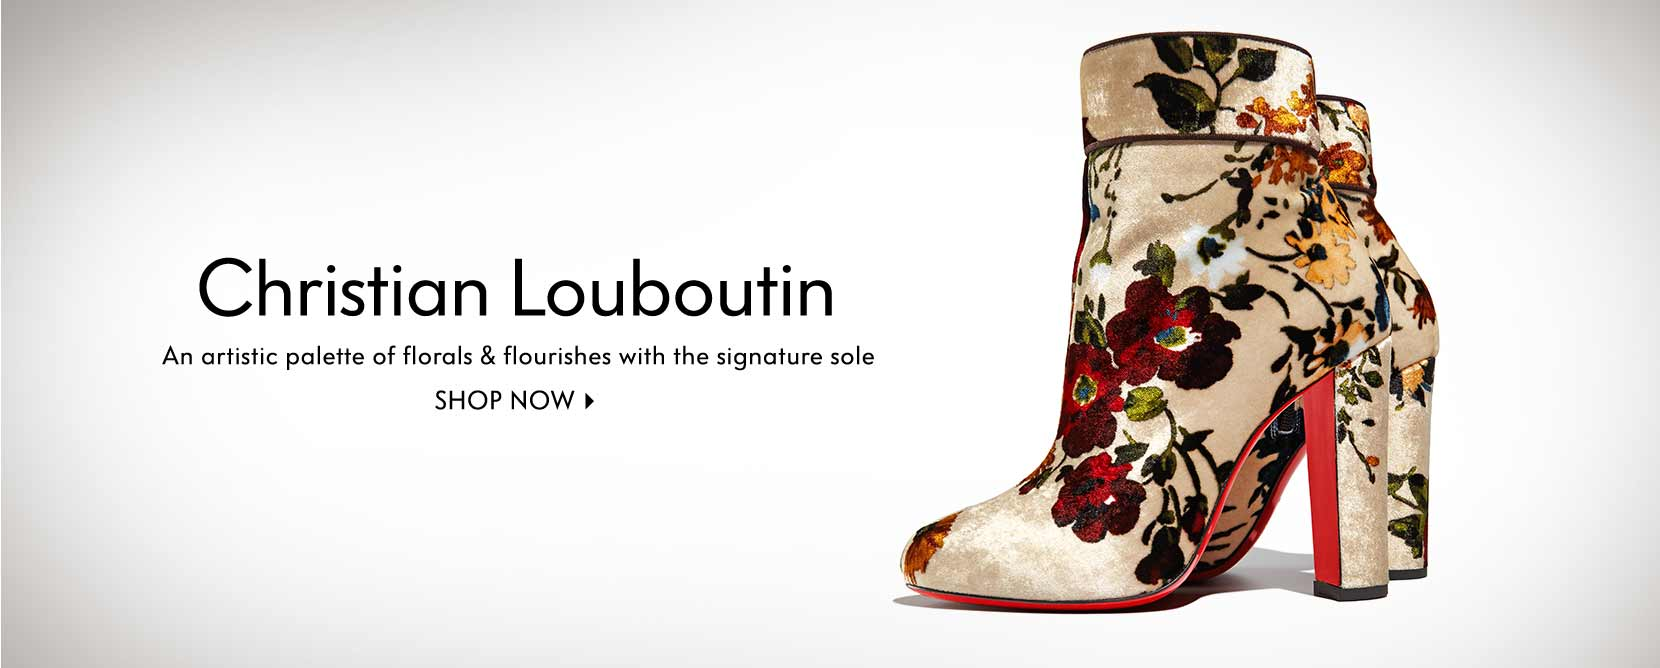 CHRISTIAN LOUBOUTIN An artistic palette of florals & flourishes with the signature sole Shop now